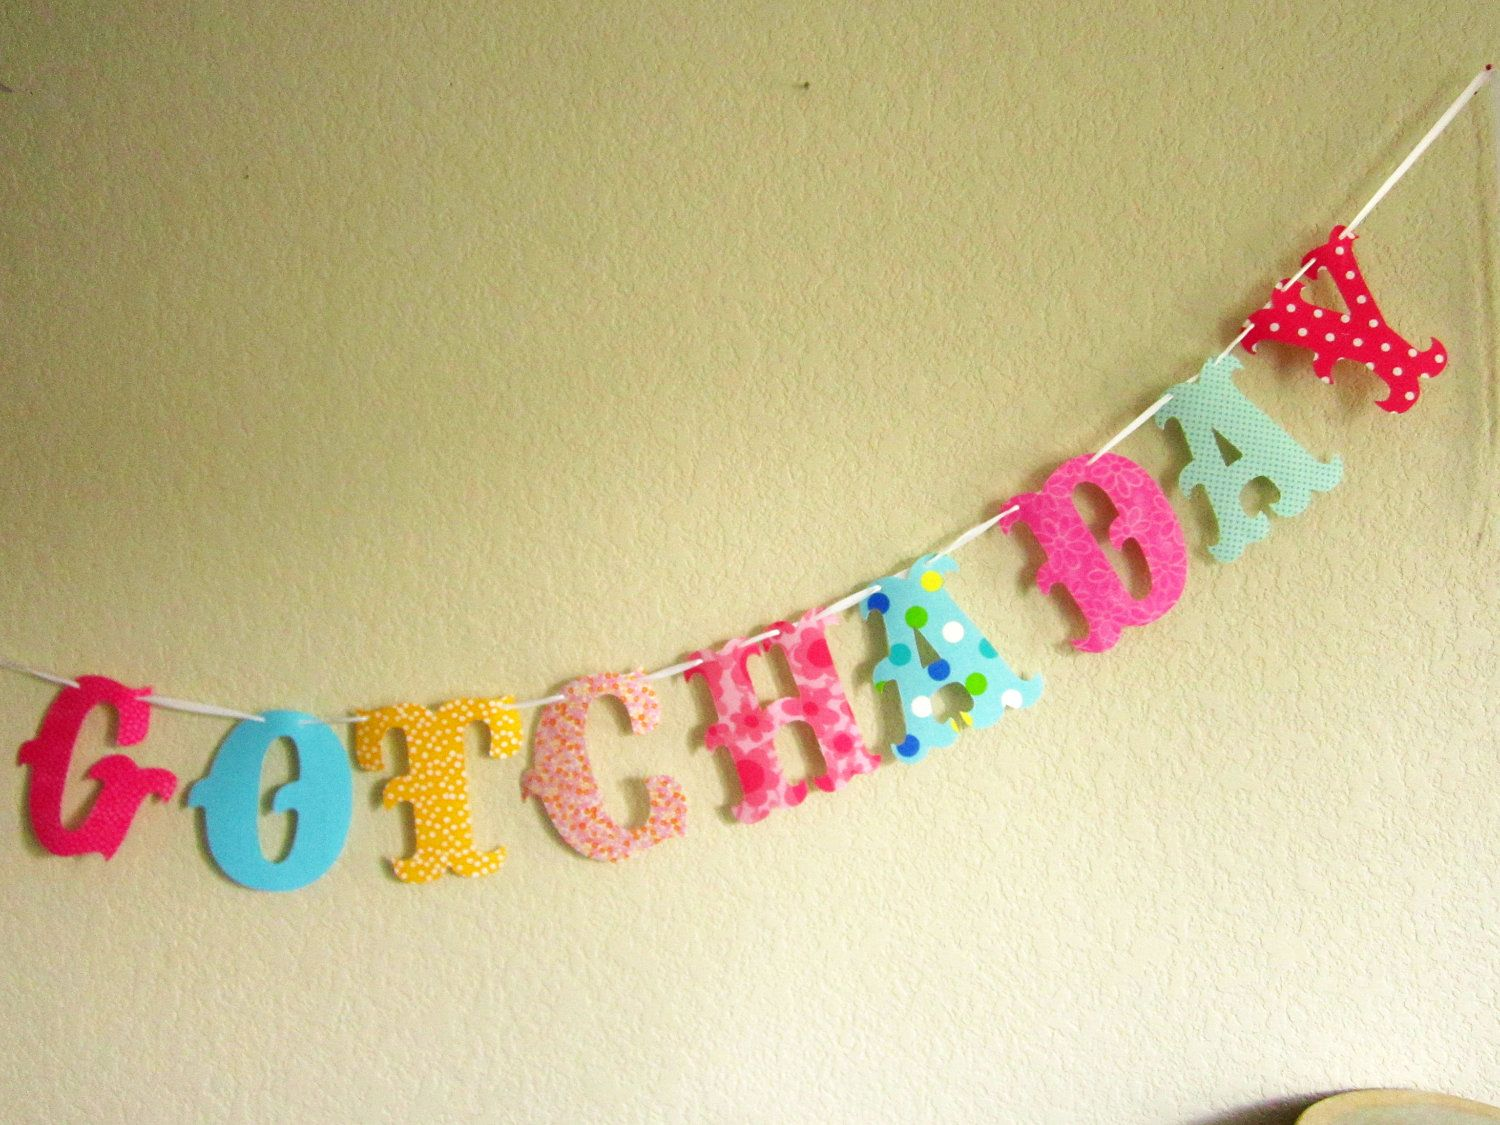 Up To 14 Letters Completely Custom Happy Gotcha Day Fabric Letter Banner 30 00 Via Etsy Gotcha Day Adoption Day Adoption Party